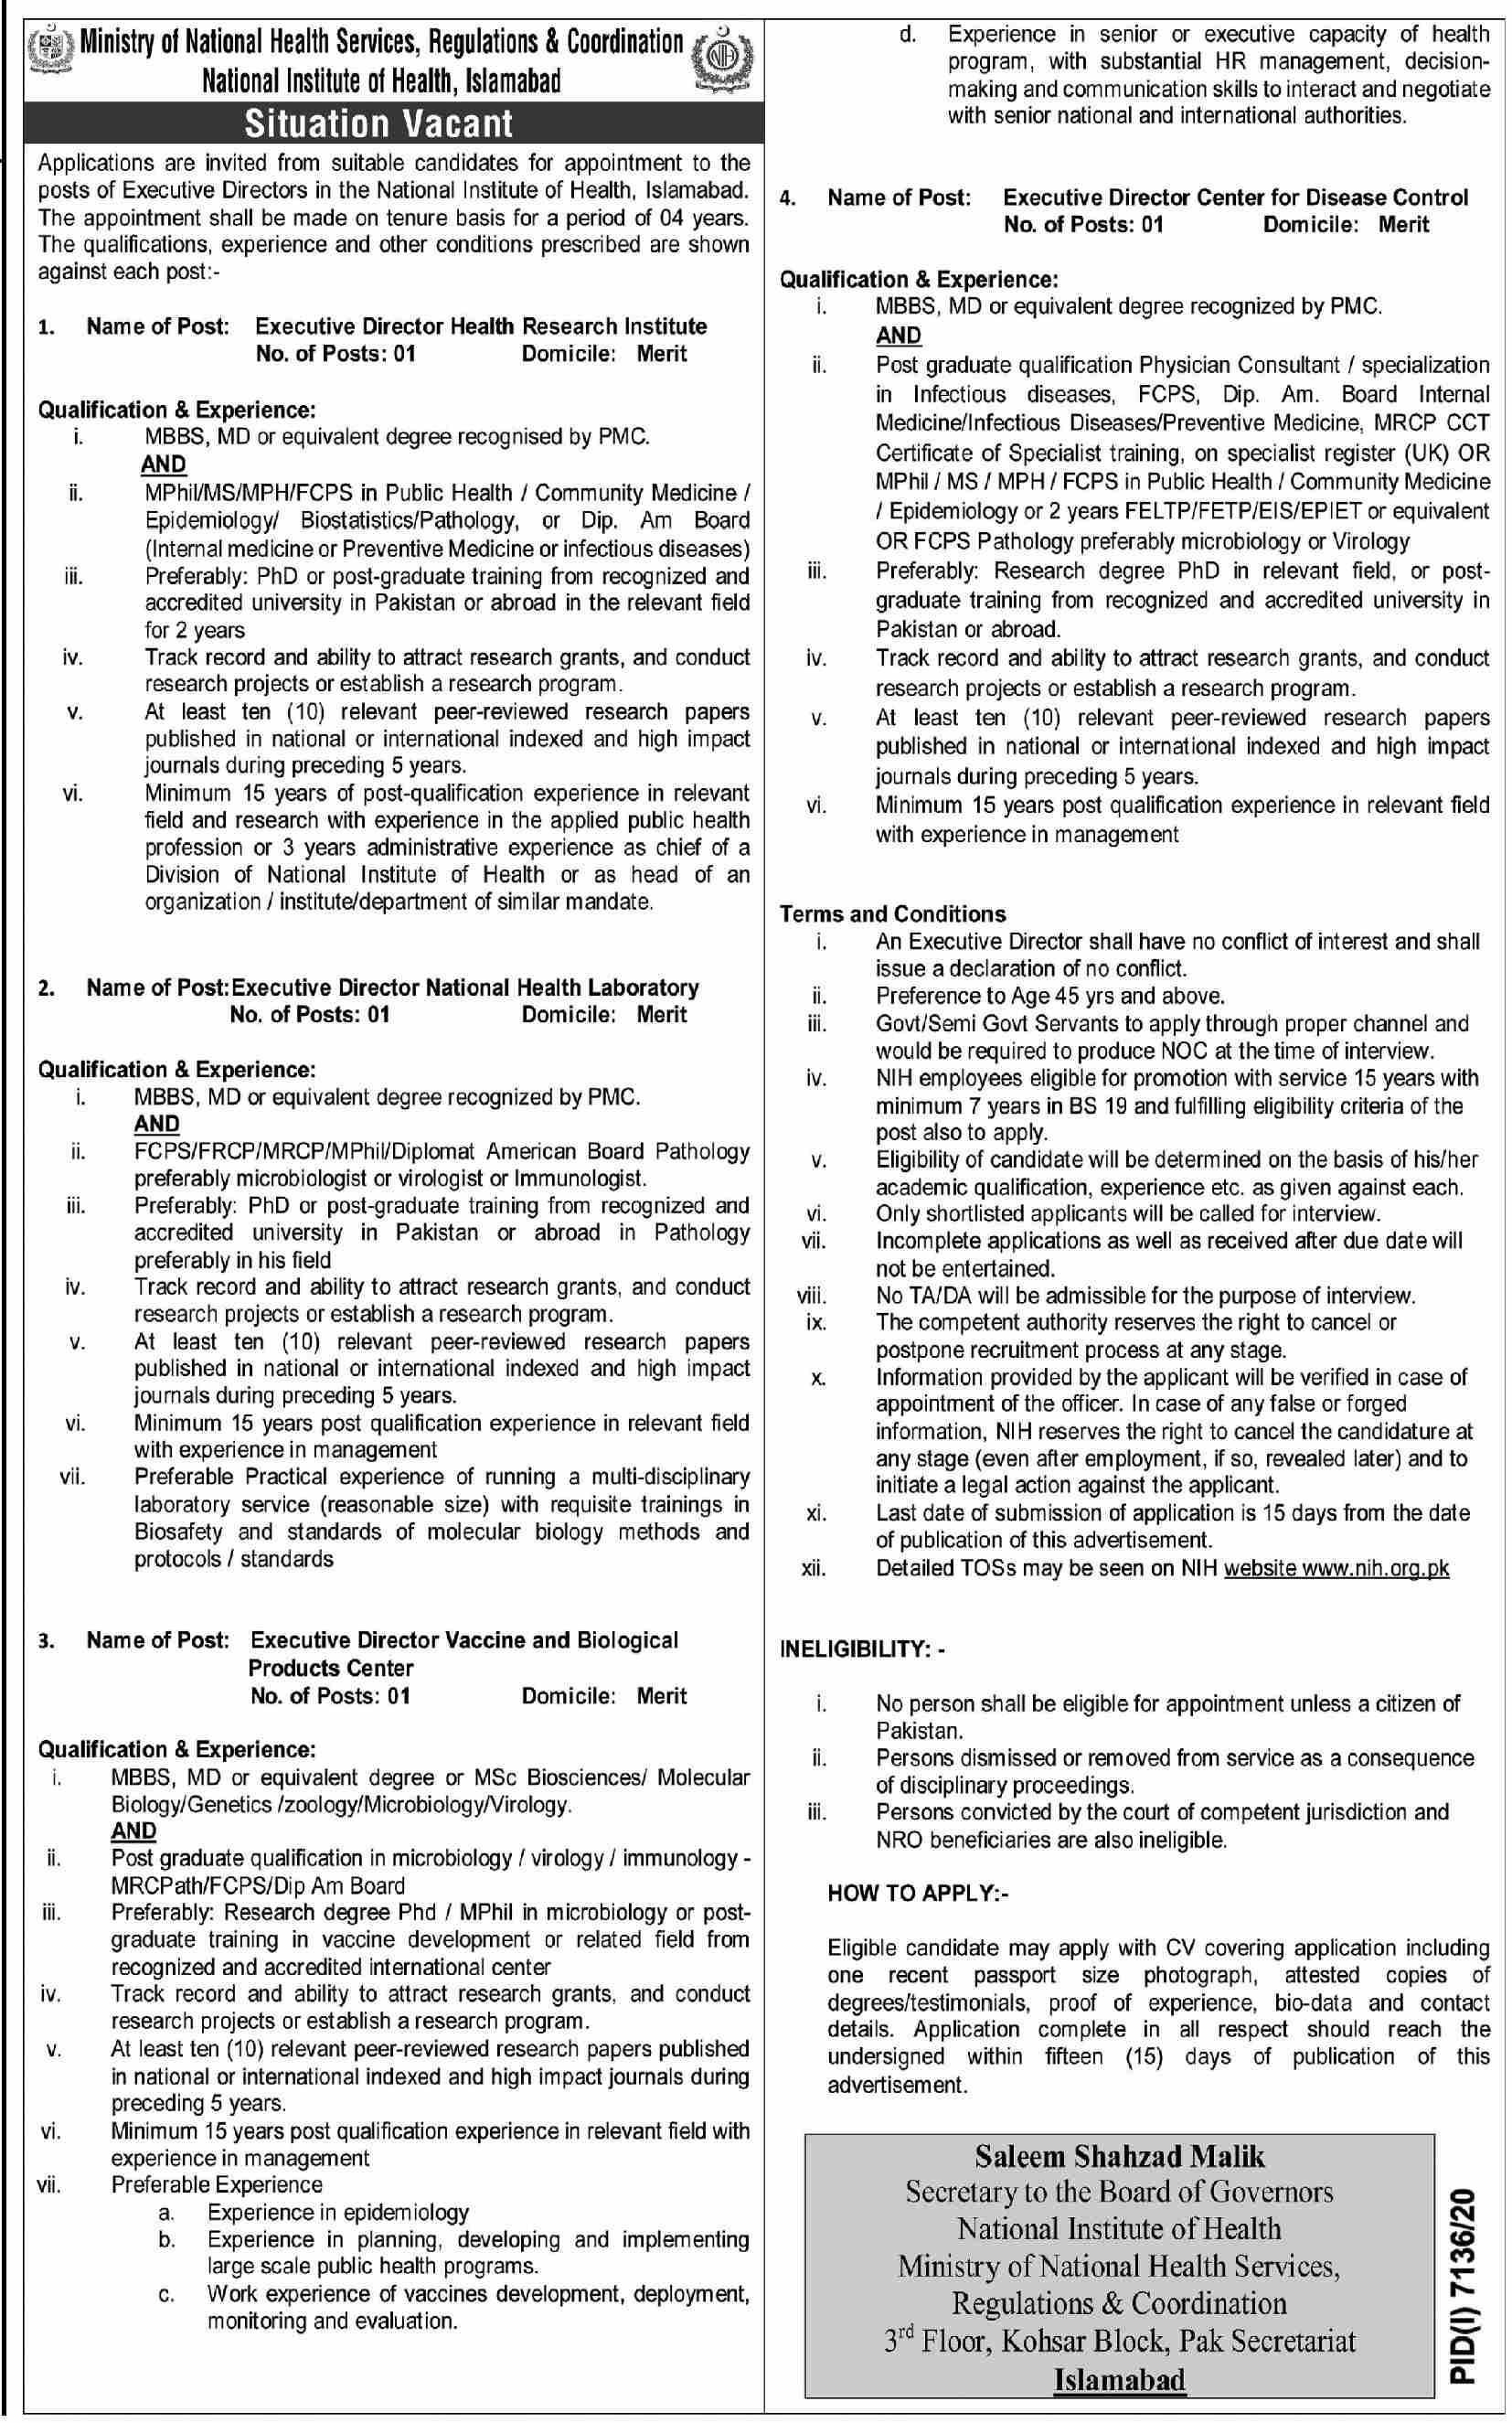 National Institute of Health Islamabad Jobs 2021